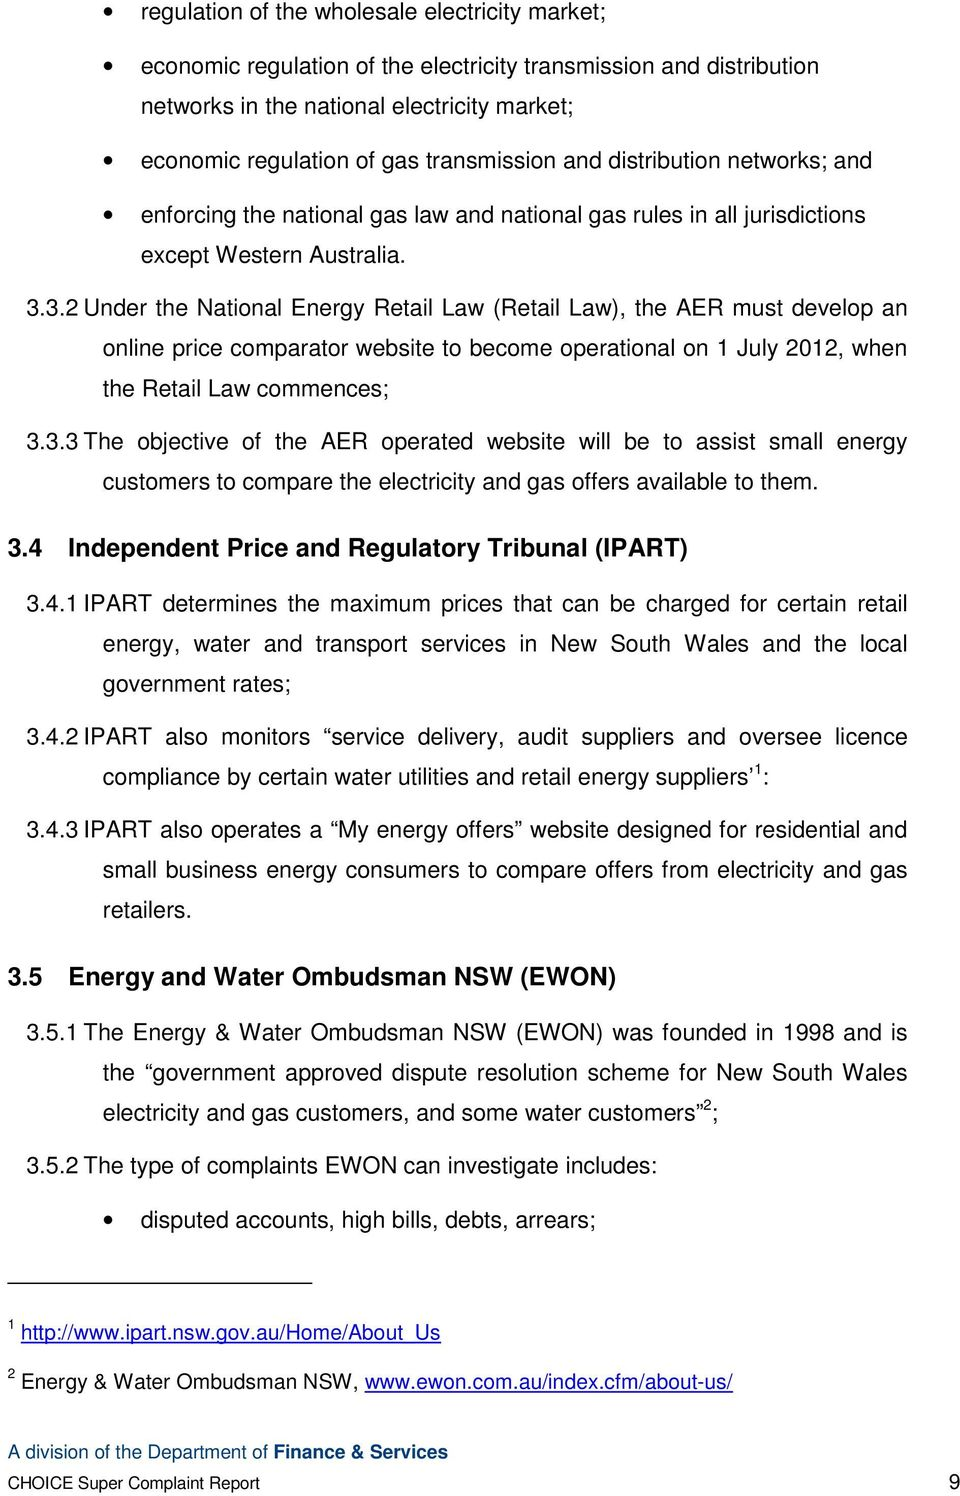 3.2 Under the National Energy Retail Law (Retail Law), the AER must develop an online price comparator website to become operational on 1 July 2012, when the Retail Law commences; 3.3.3 The objective of the AER operated website will be to assist small energy customers to compare the electricity and gas offers available to them.